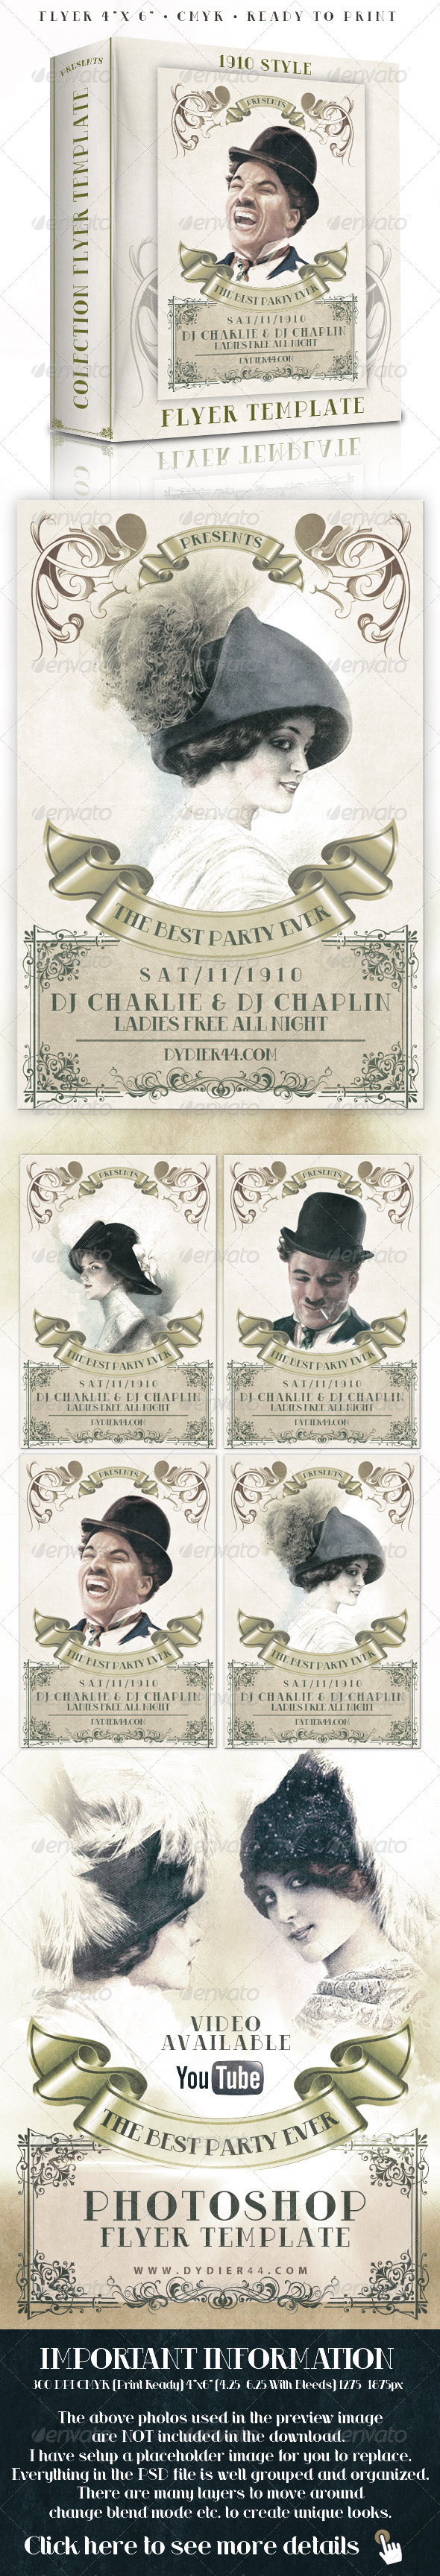 GraphicRiver 1910 Classic Style 4x6 Flyer Template 272712